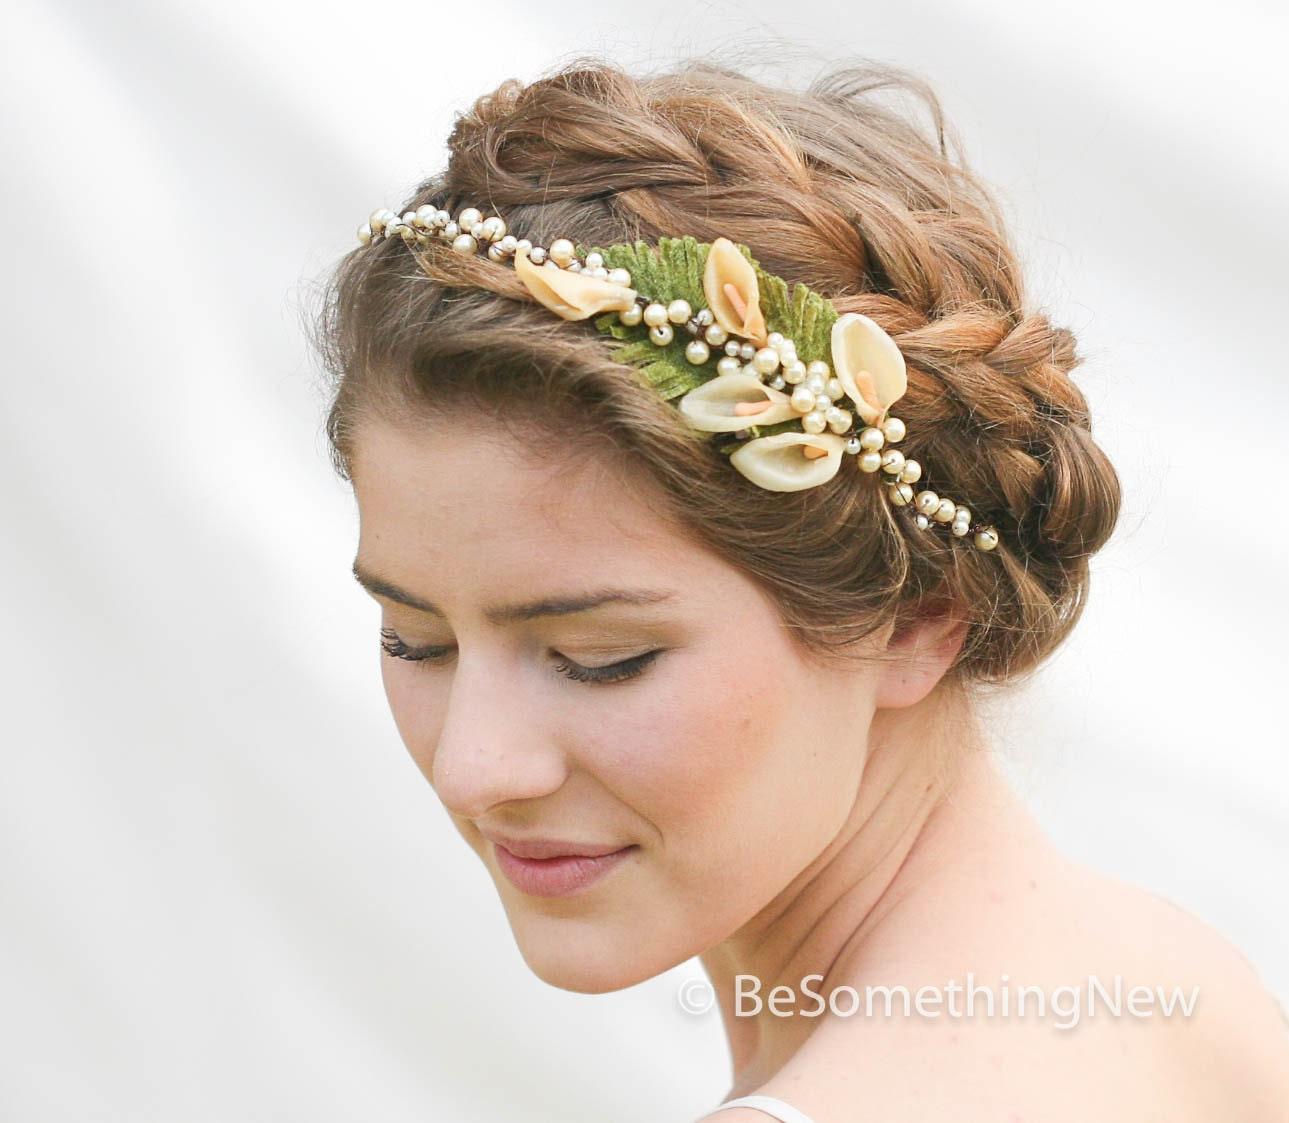 Flower Wedding Headpieces: Vintage Wax Flower Pearl Headpiece Vintage Wedding Headpiece